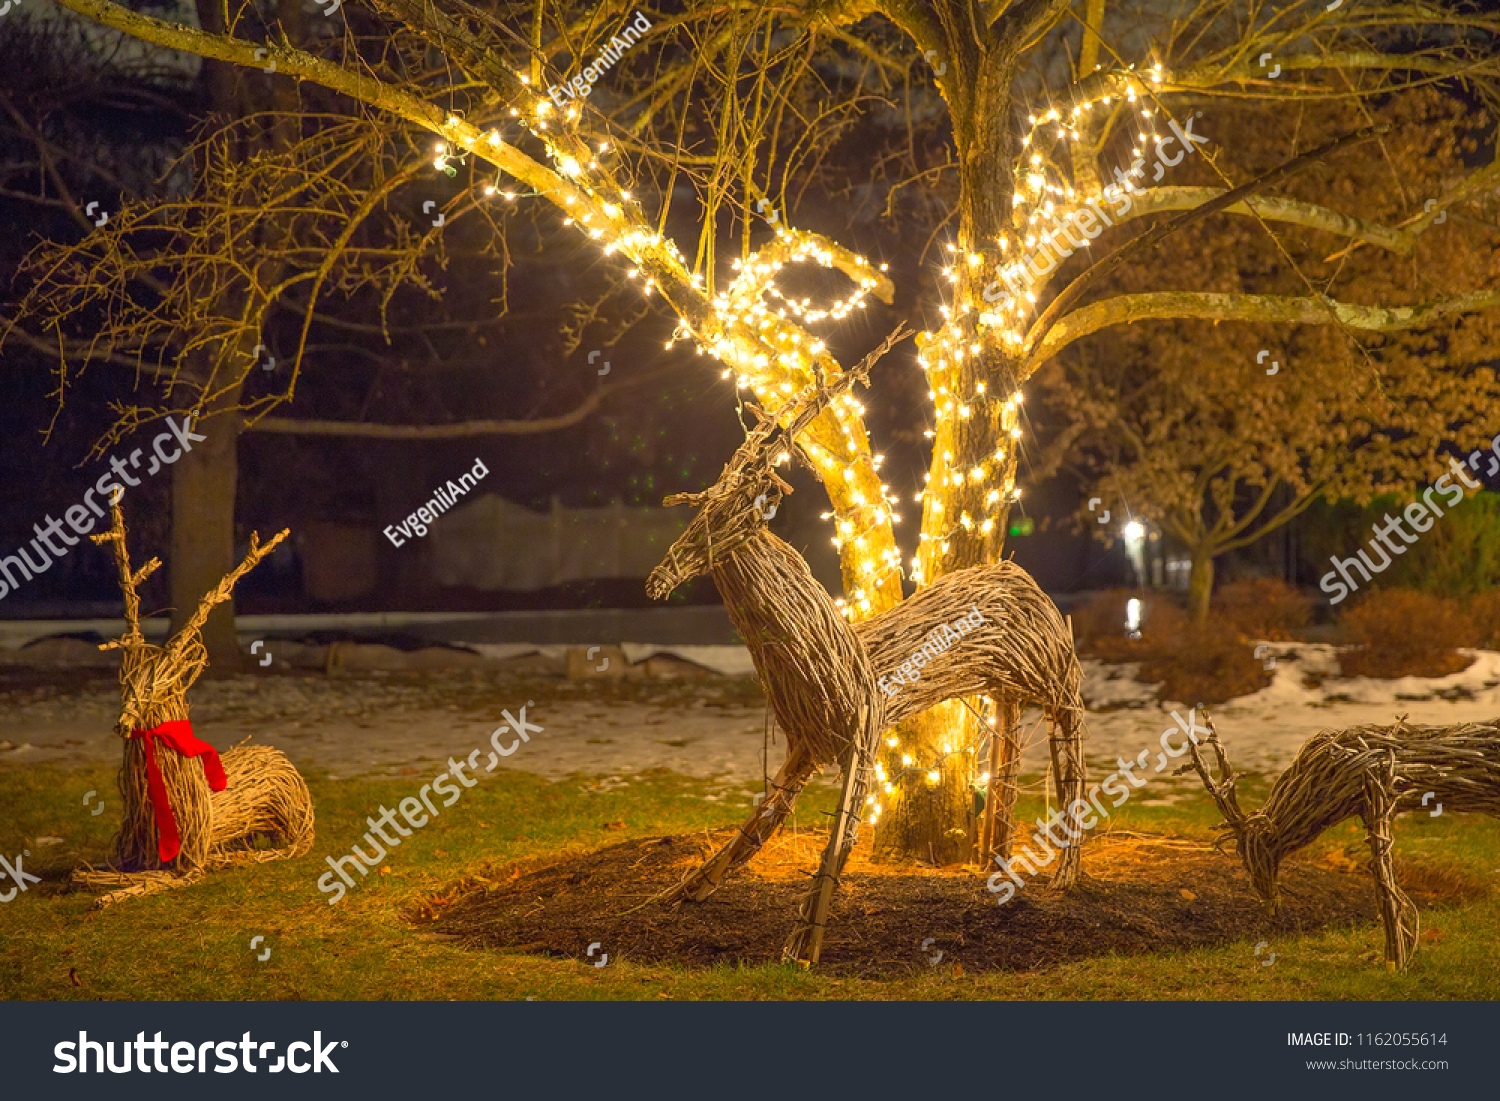 Cute Christmas Decorations Outside Christmas Reindeers Holidays Stock Image 1162055614